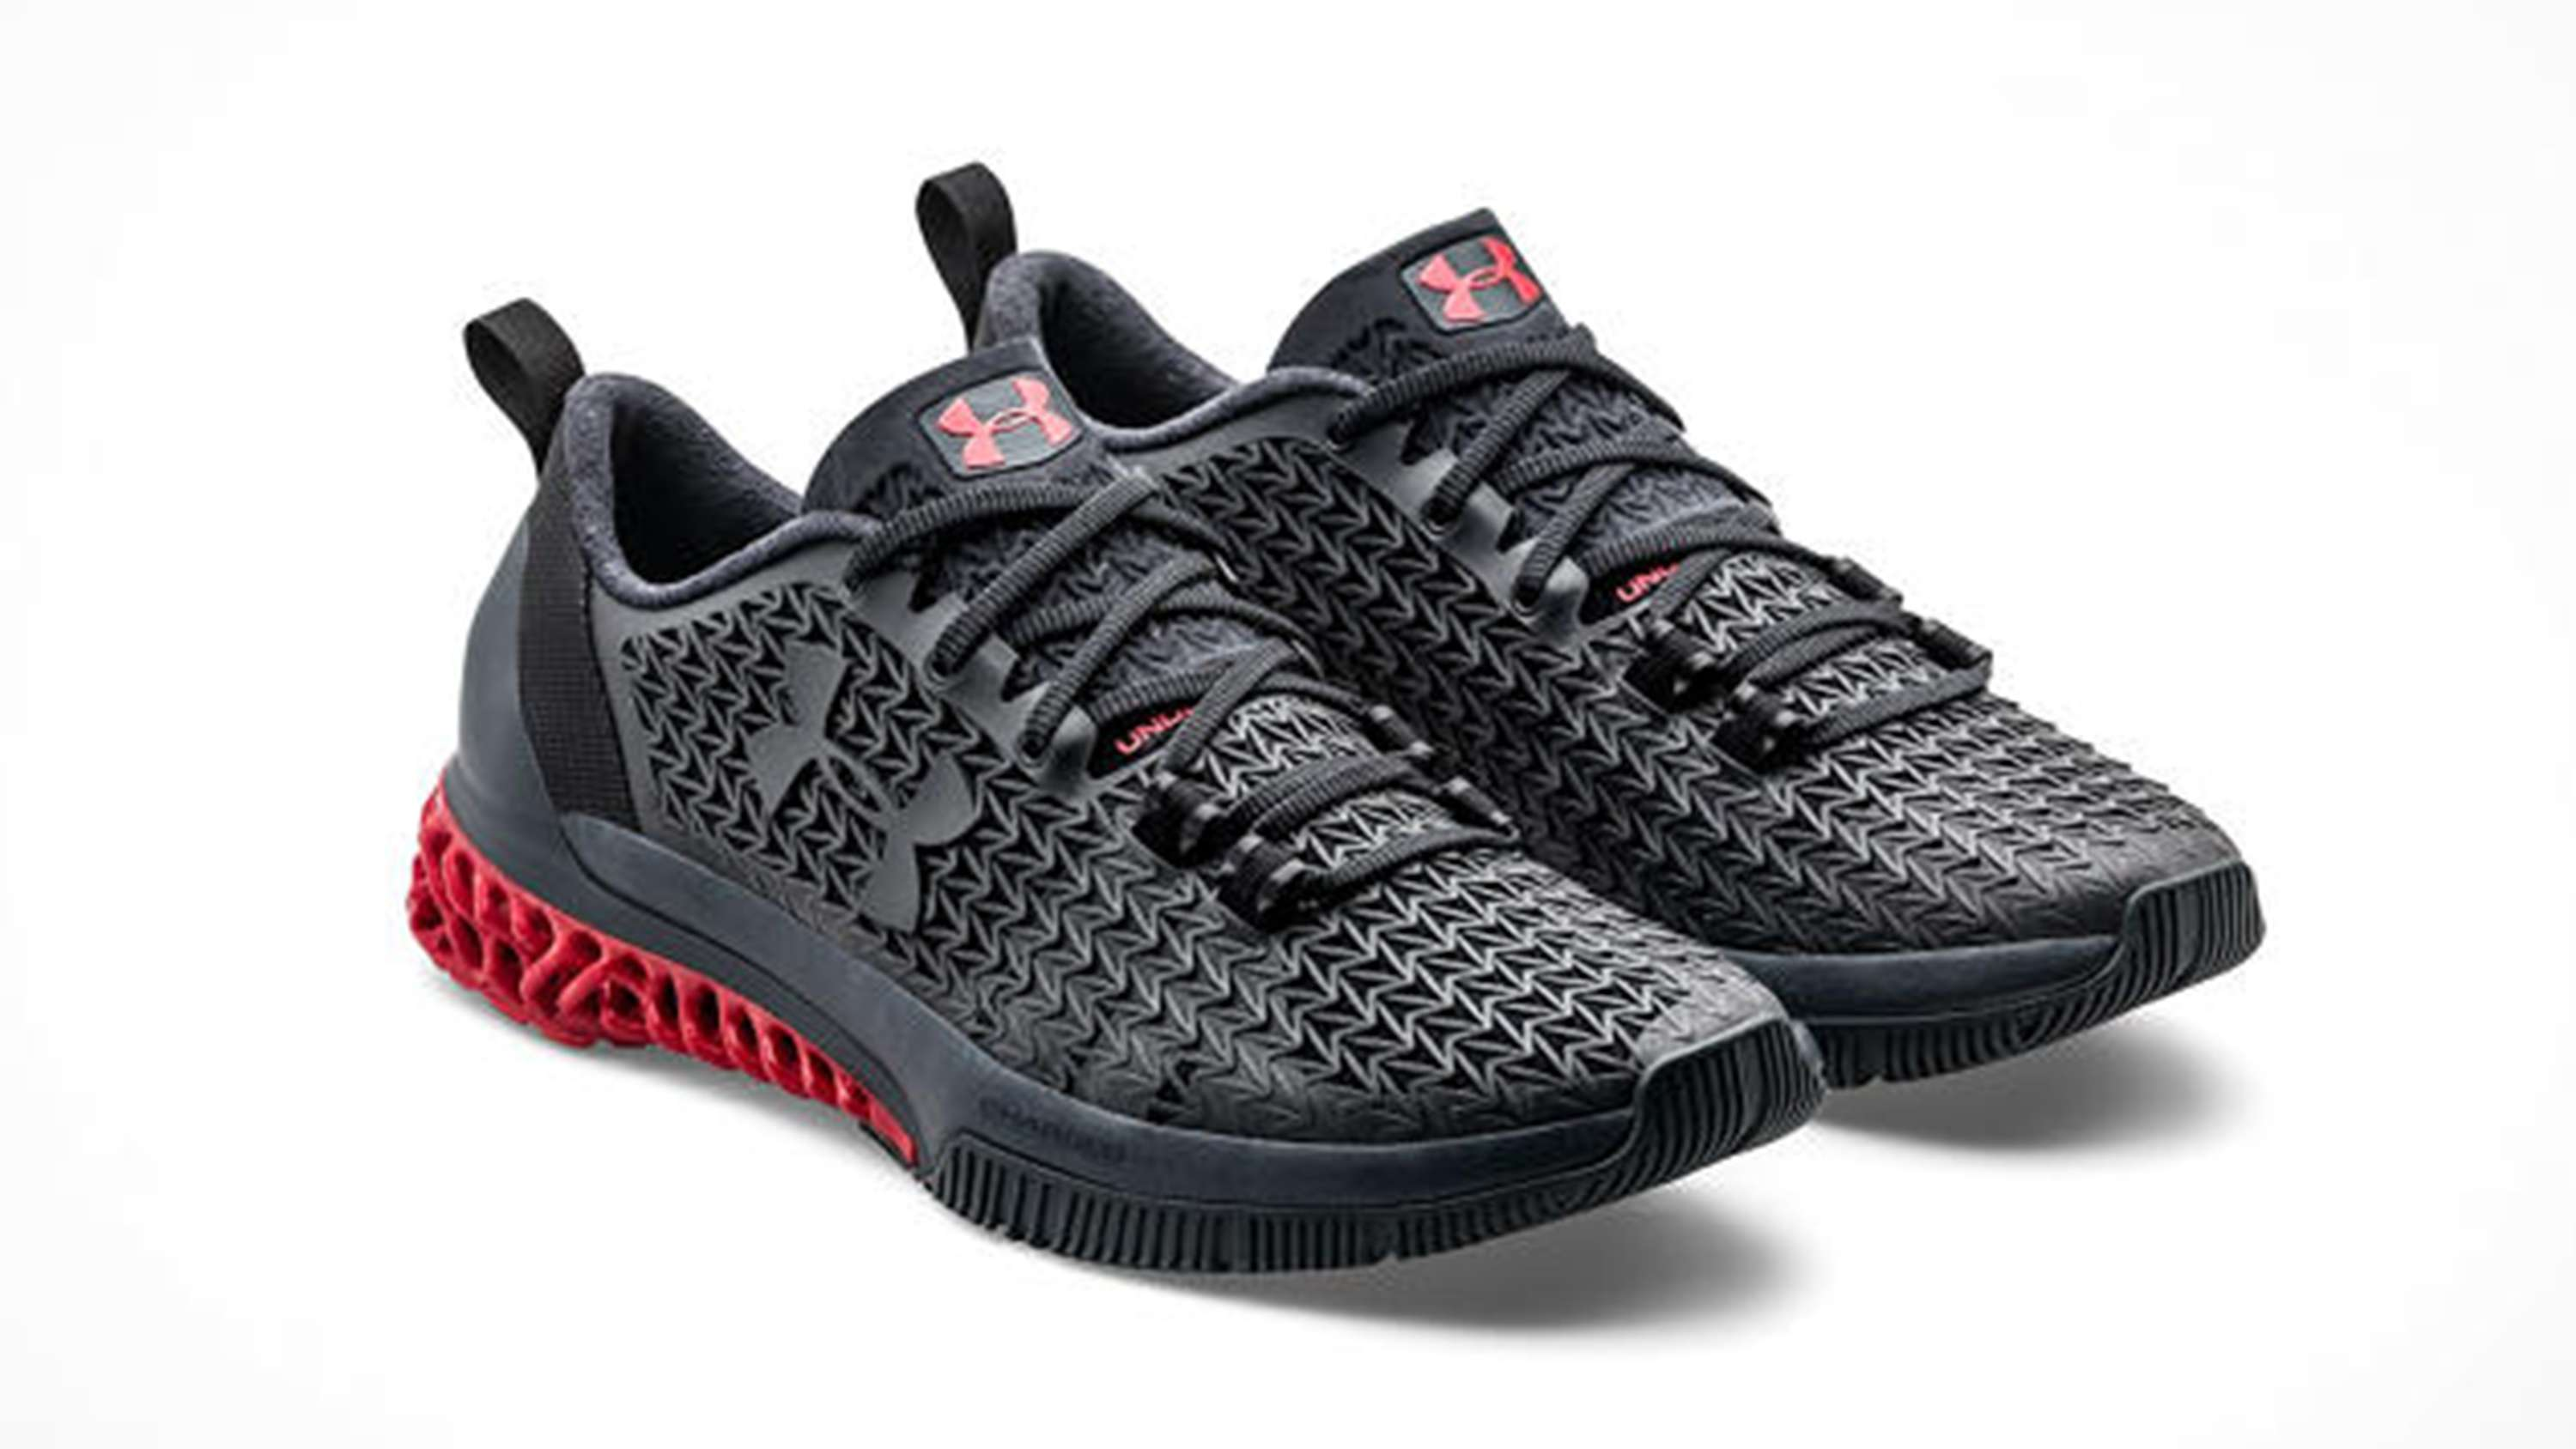 New Under Armour Golf Shoes